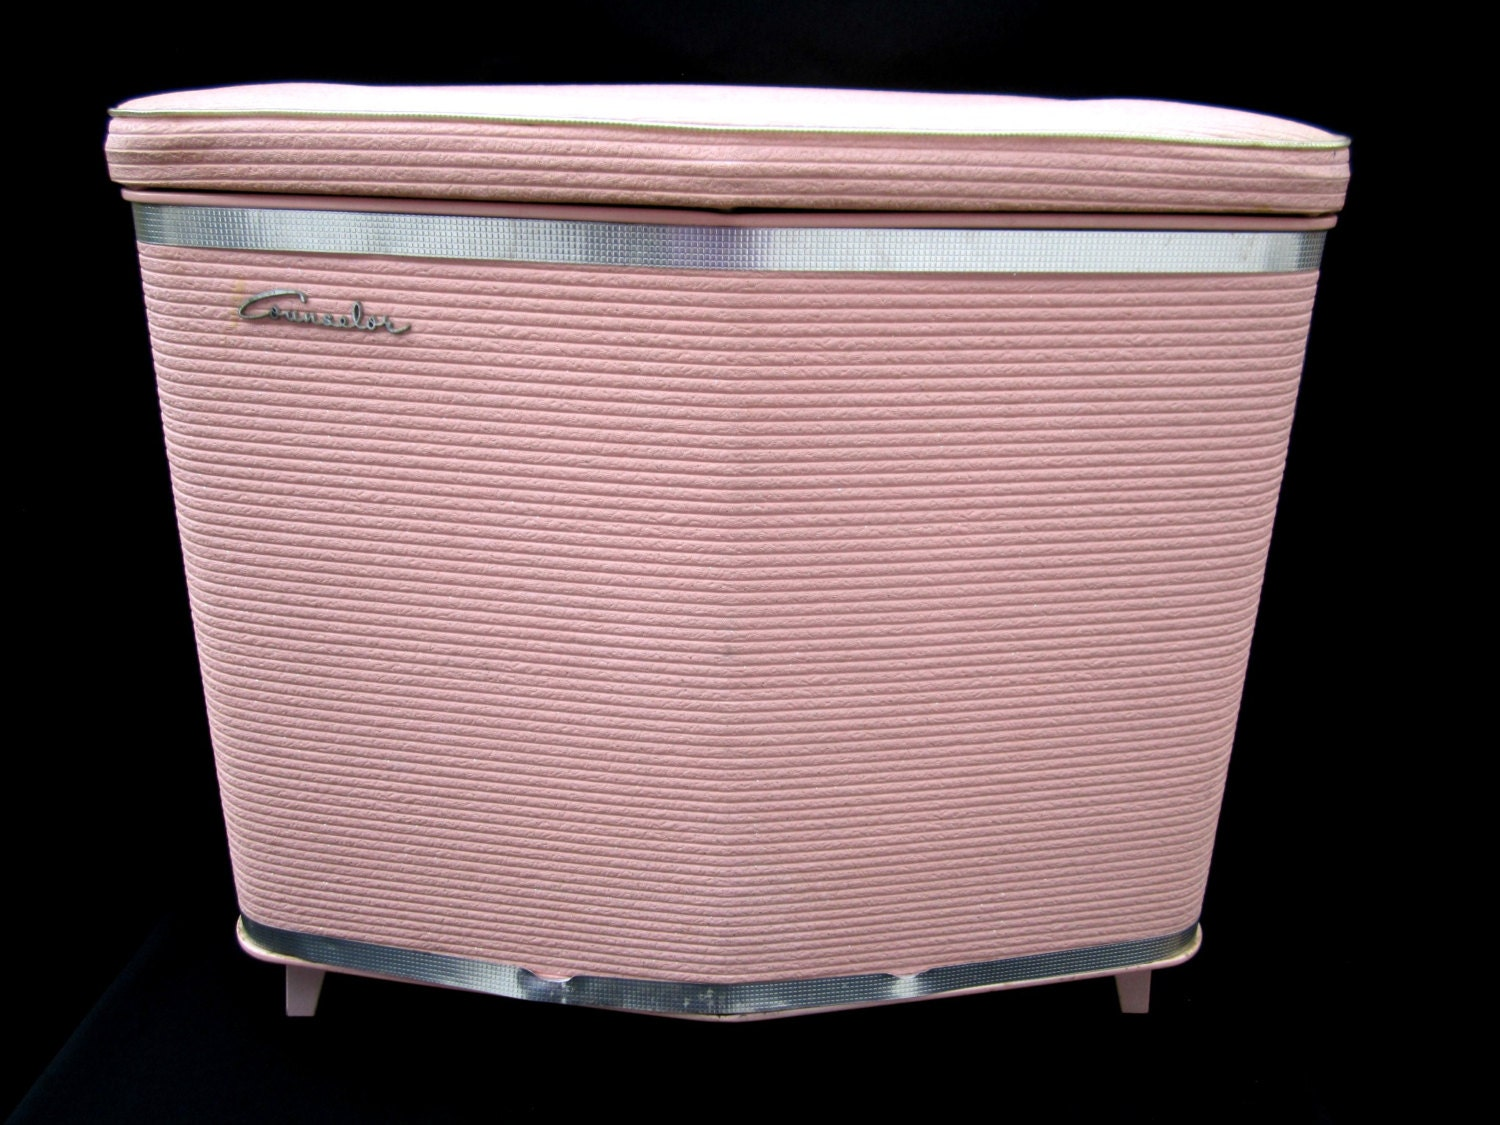 Clothes Hamper Pink Counselor Clothes Bin Laundry Vintage Mid